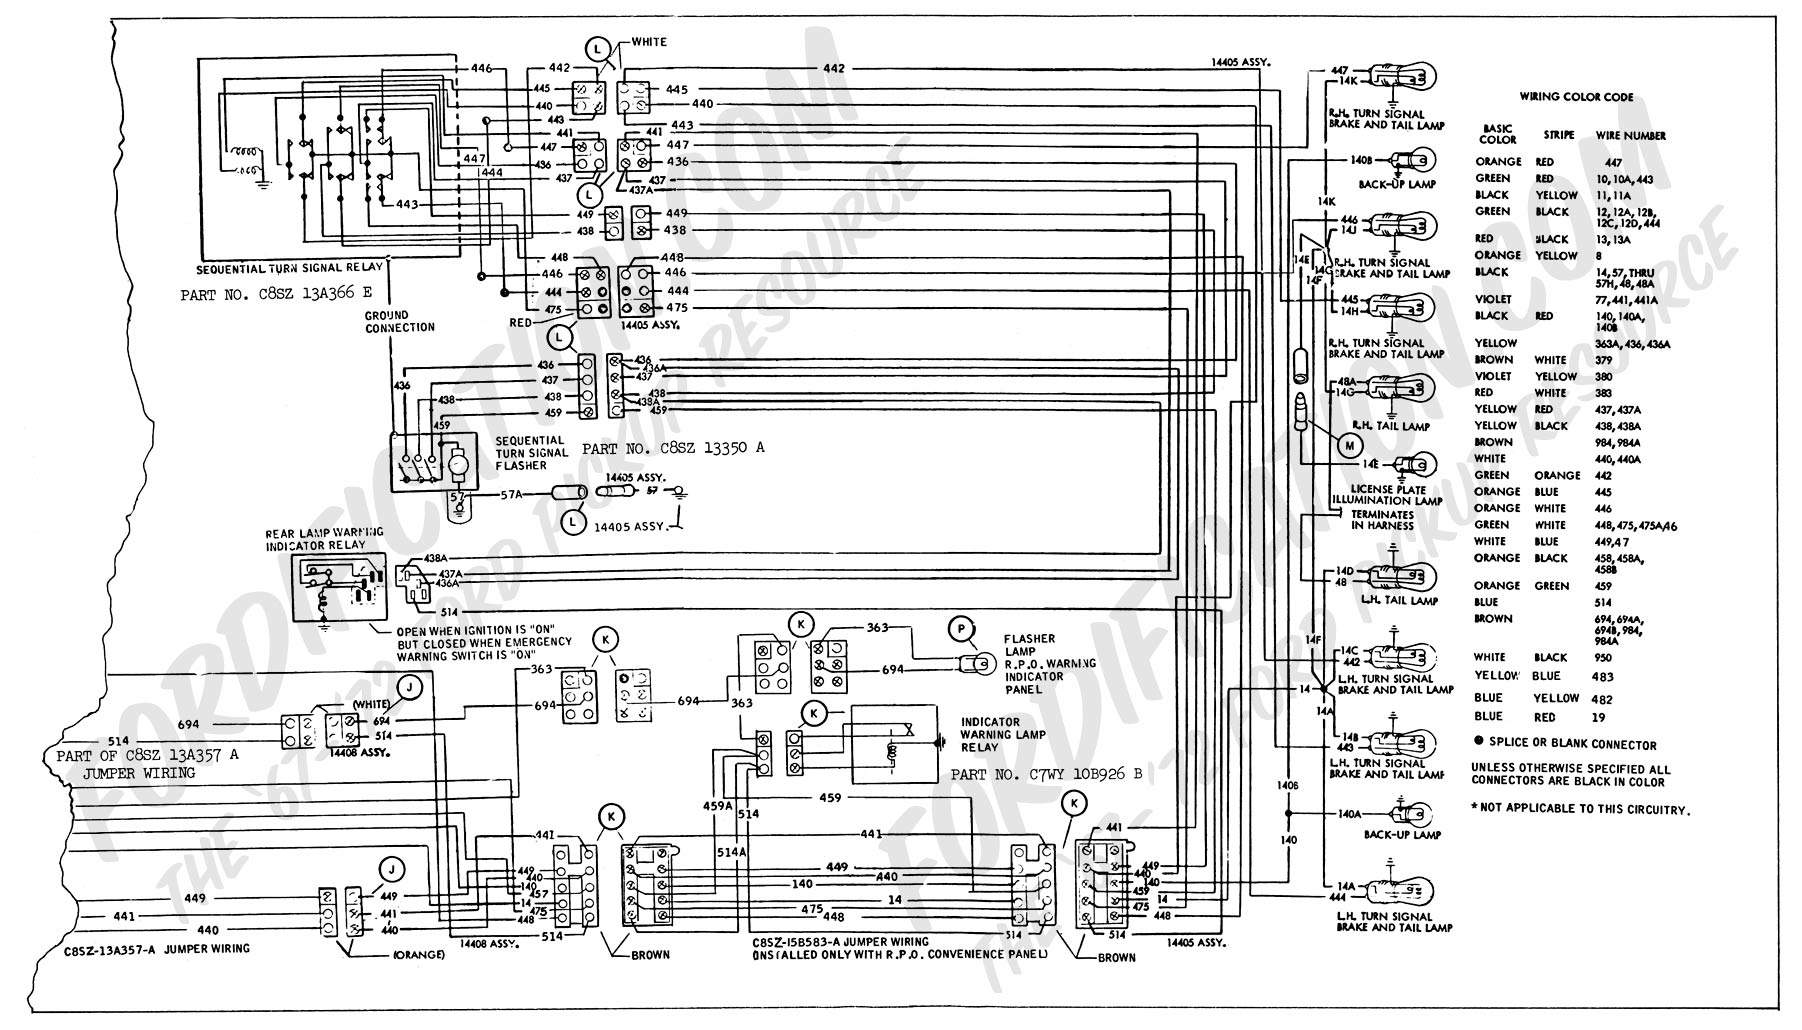 1967 ford thunderbird wiring diagram product wiring diagrams u2022 rh genesisventures us